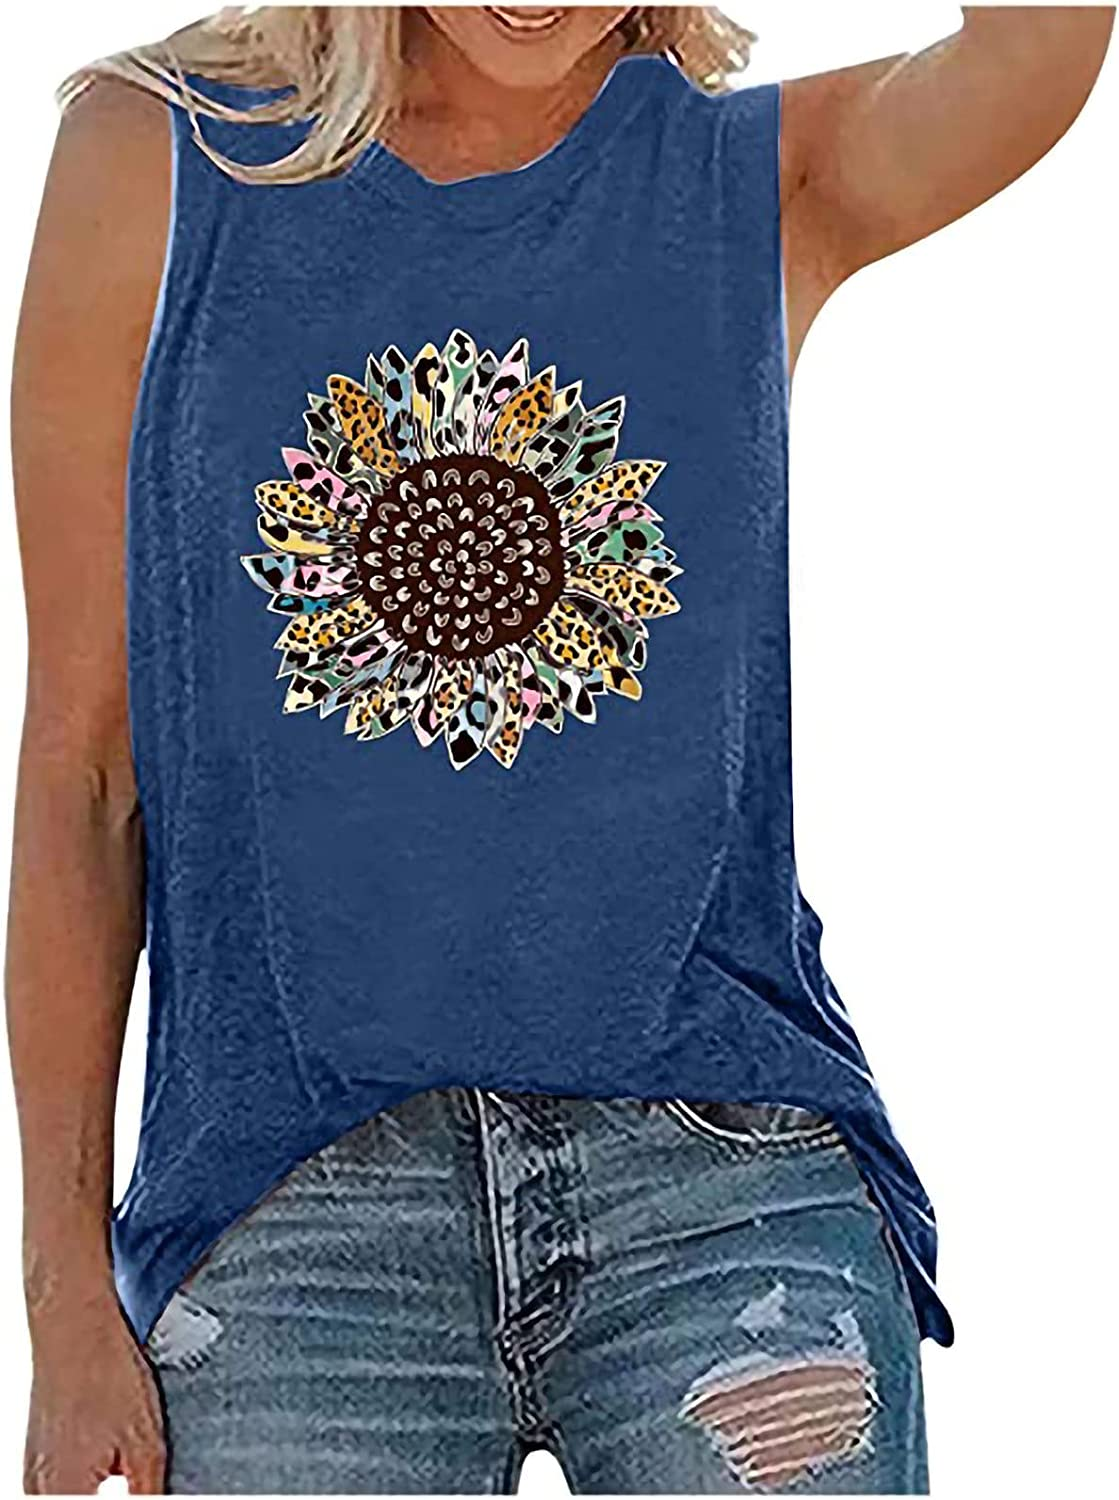 BUGI Plus Size Sunflower Printed Tee Shirts Womens Tank Tops Casual Loose Fit Sleeveless Tunics for Women Tops Night Out